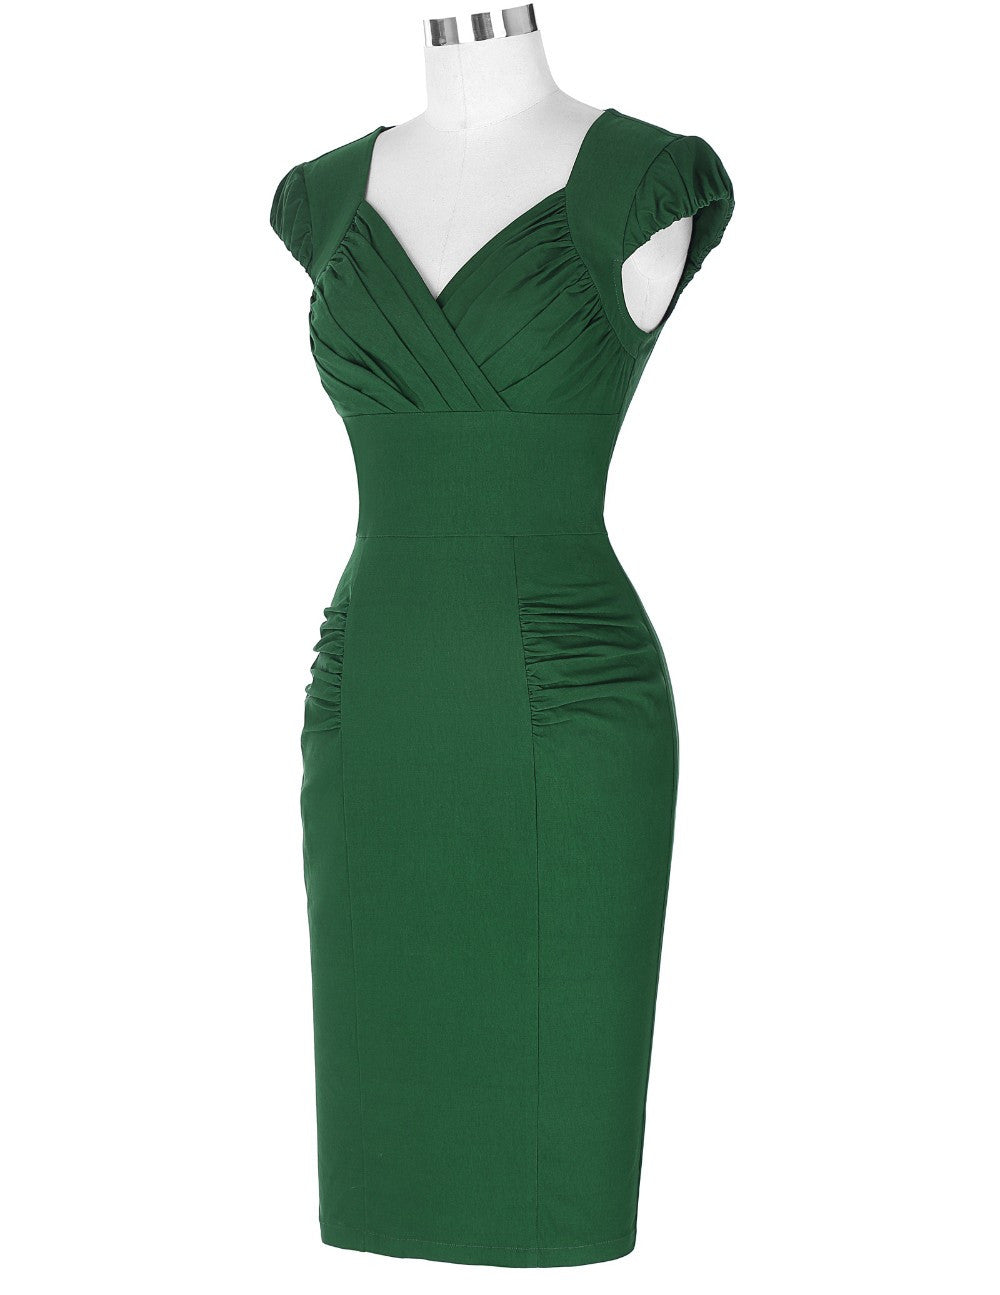 The Serena Wiggle Dress by Ponyboy Vintage Clothing!